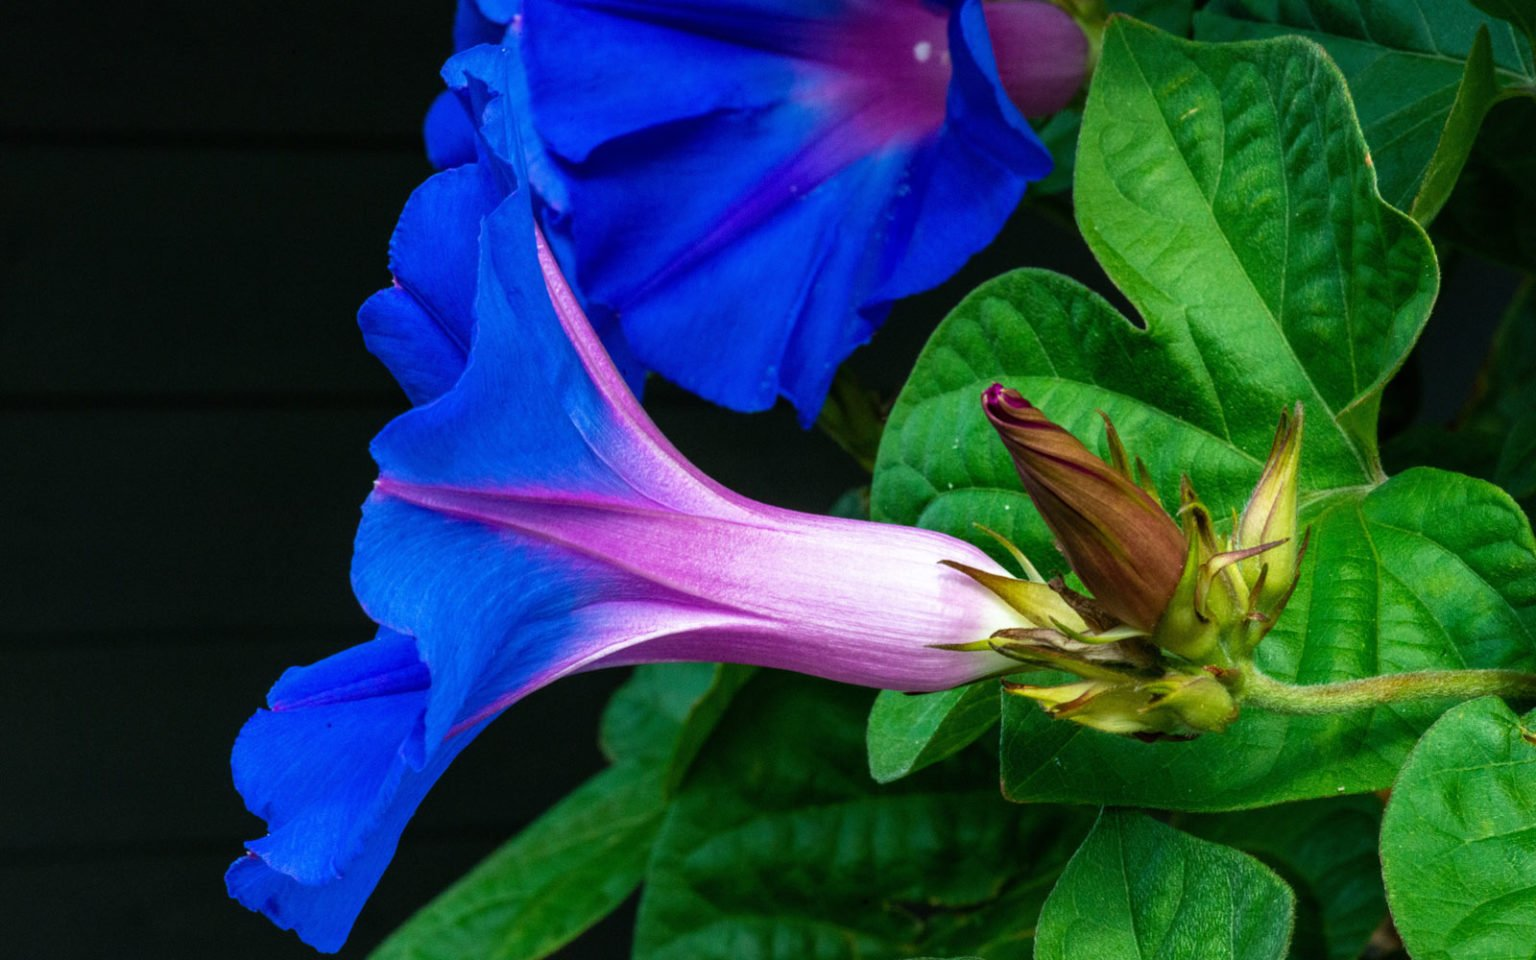 Morning Glory Guide: Seeds, Effects, Common Uses, Safety